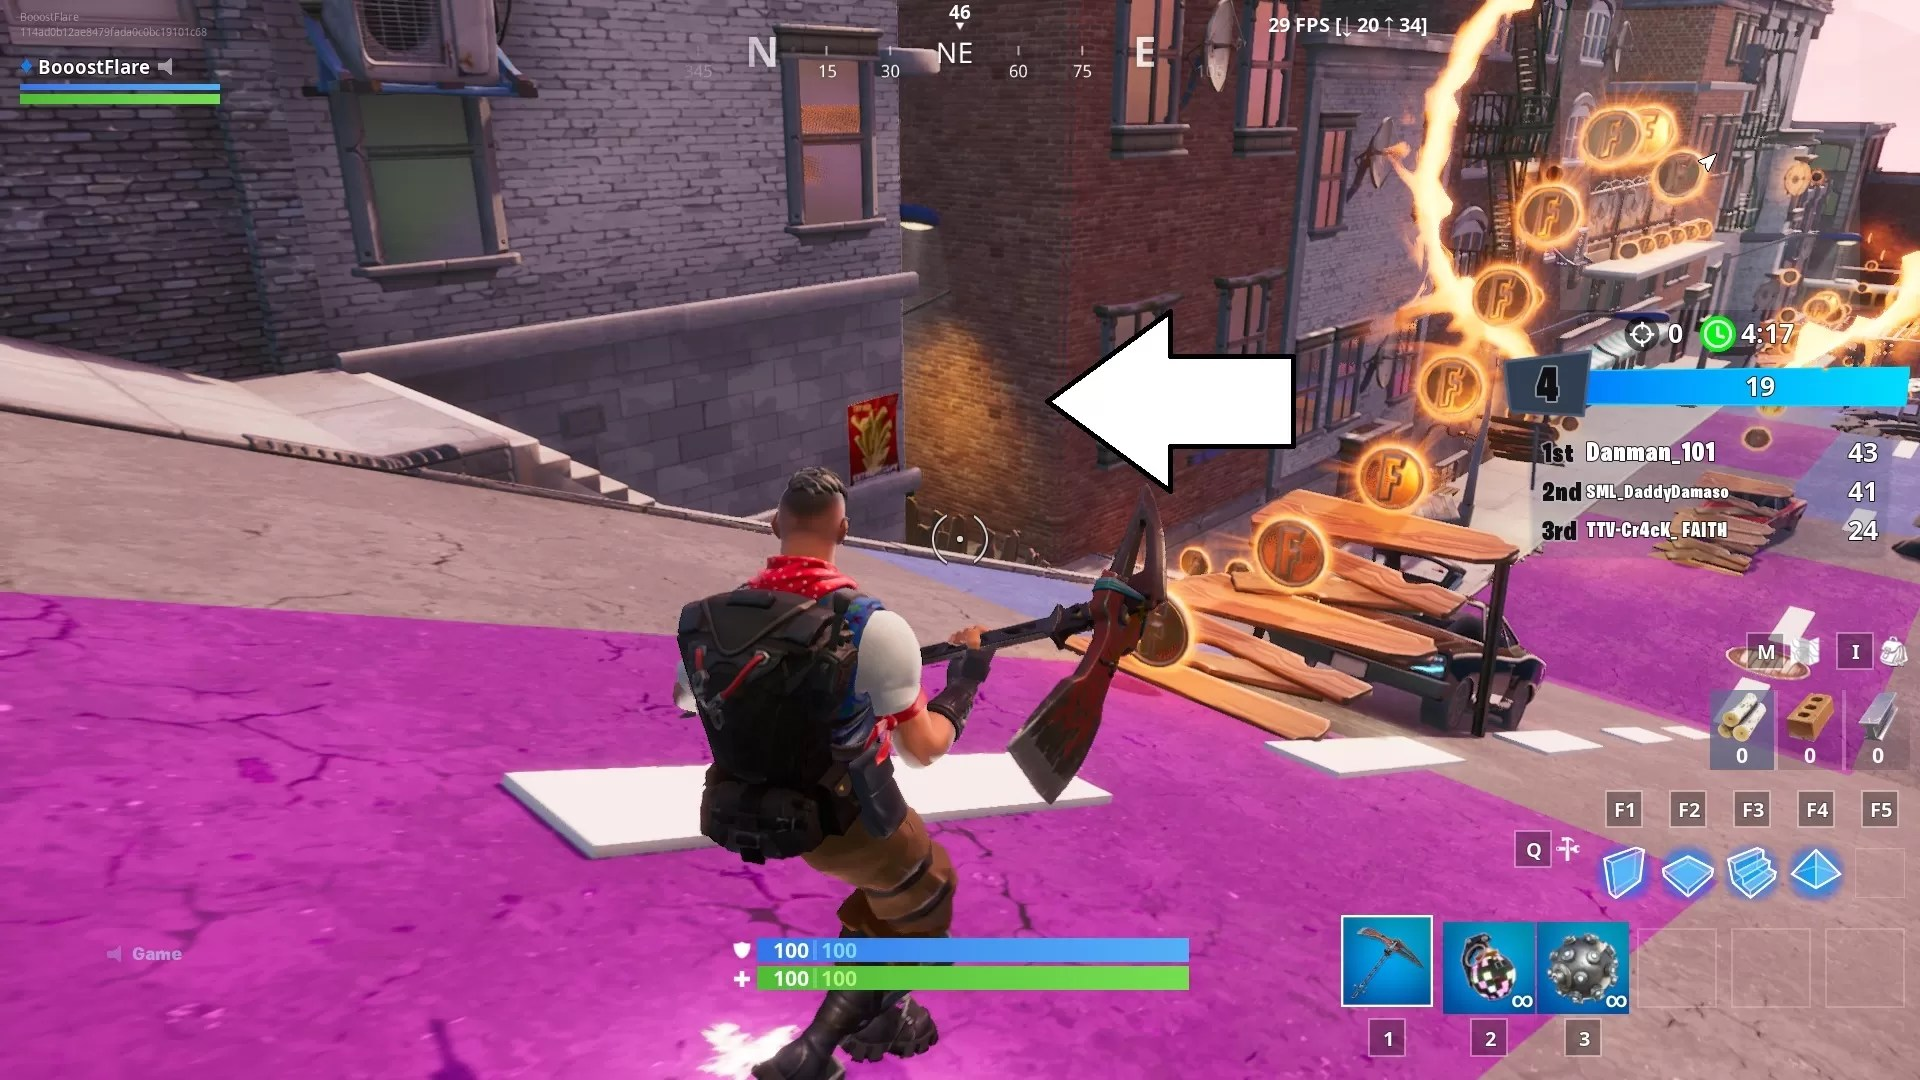 Fortnite Downtown Drop LTM Challenges Guide – How to Complete